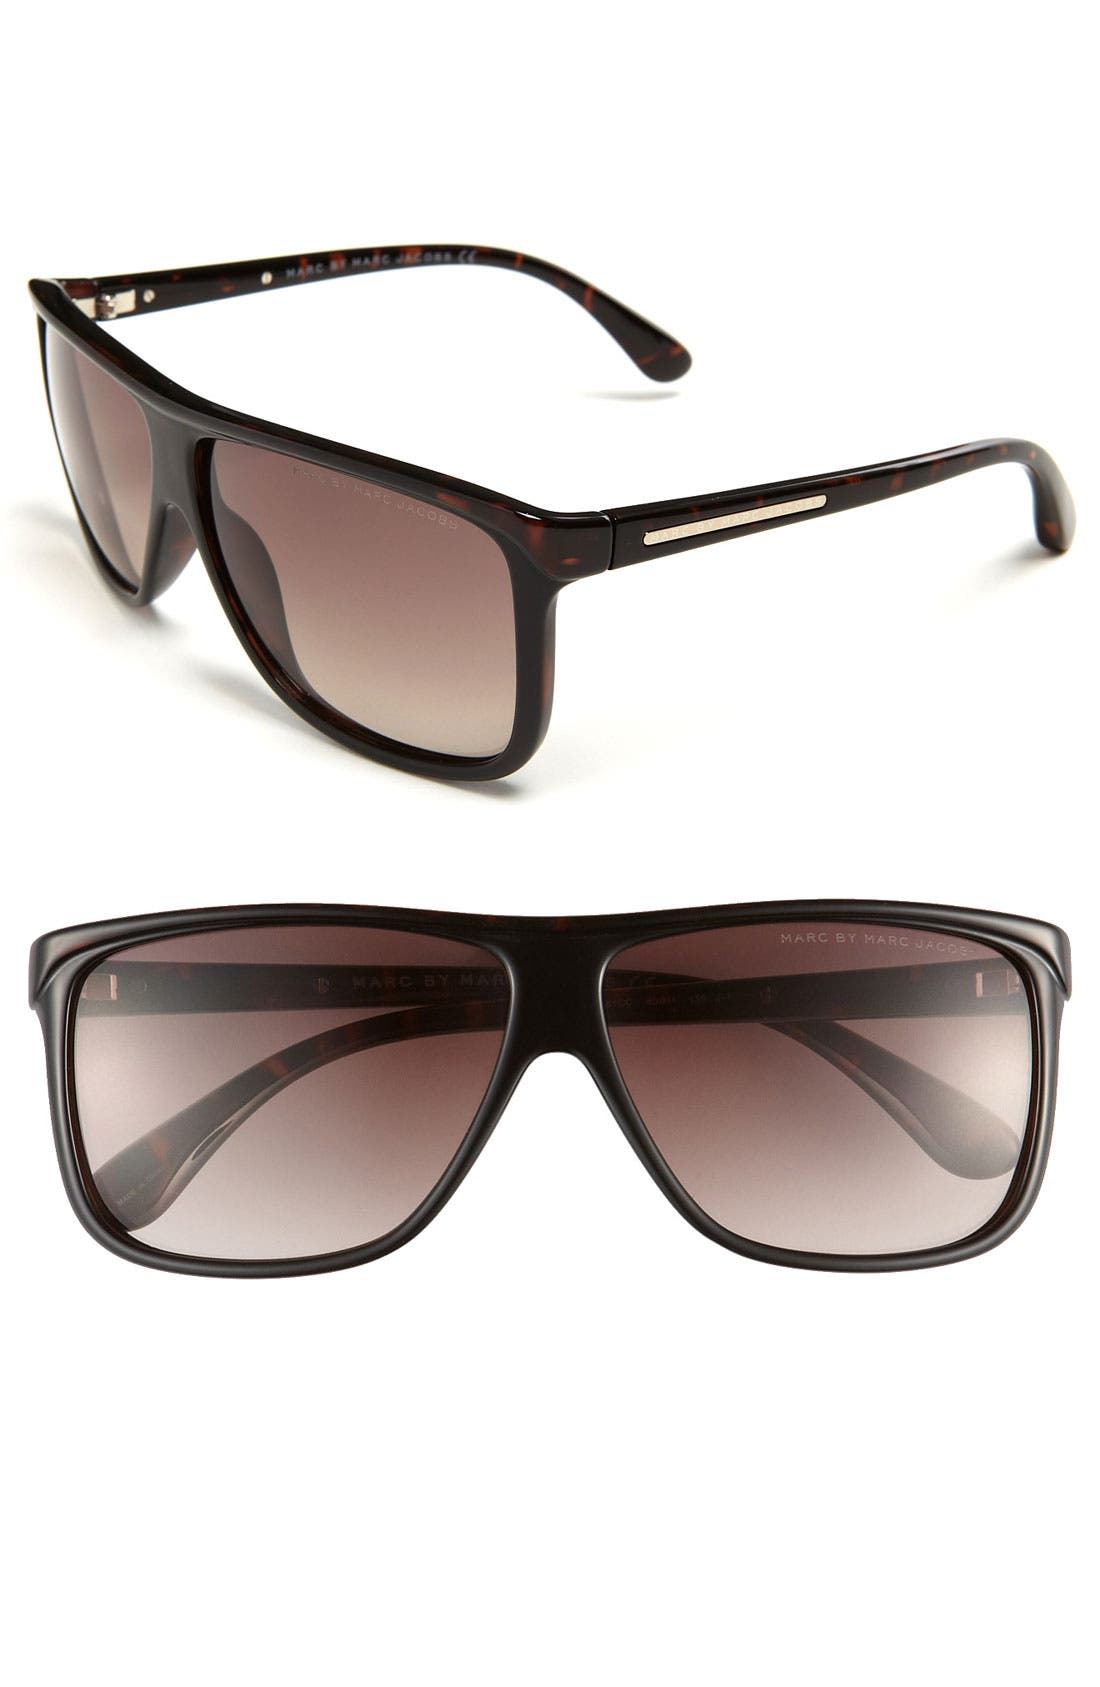 Alternate Image 1 Selected - MARC BY MARC JACOBS Retro 60mm Sunglasses